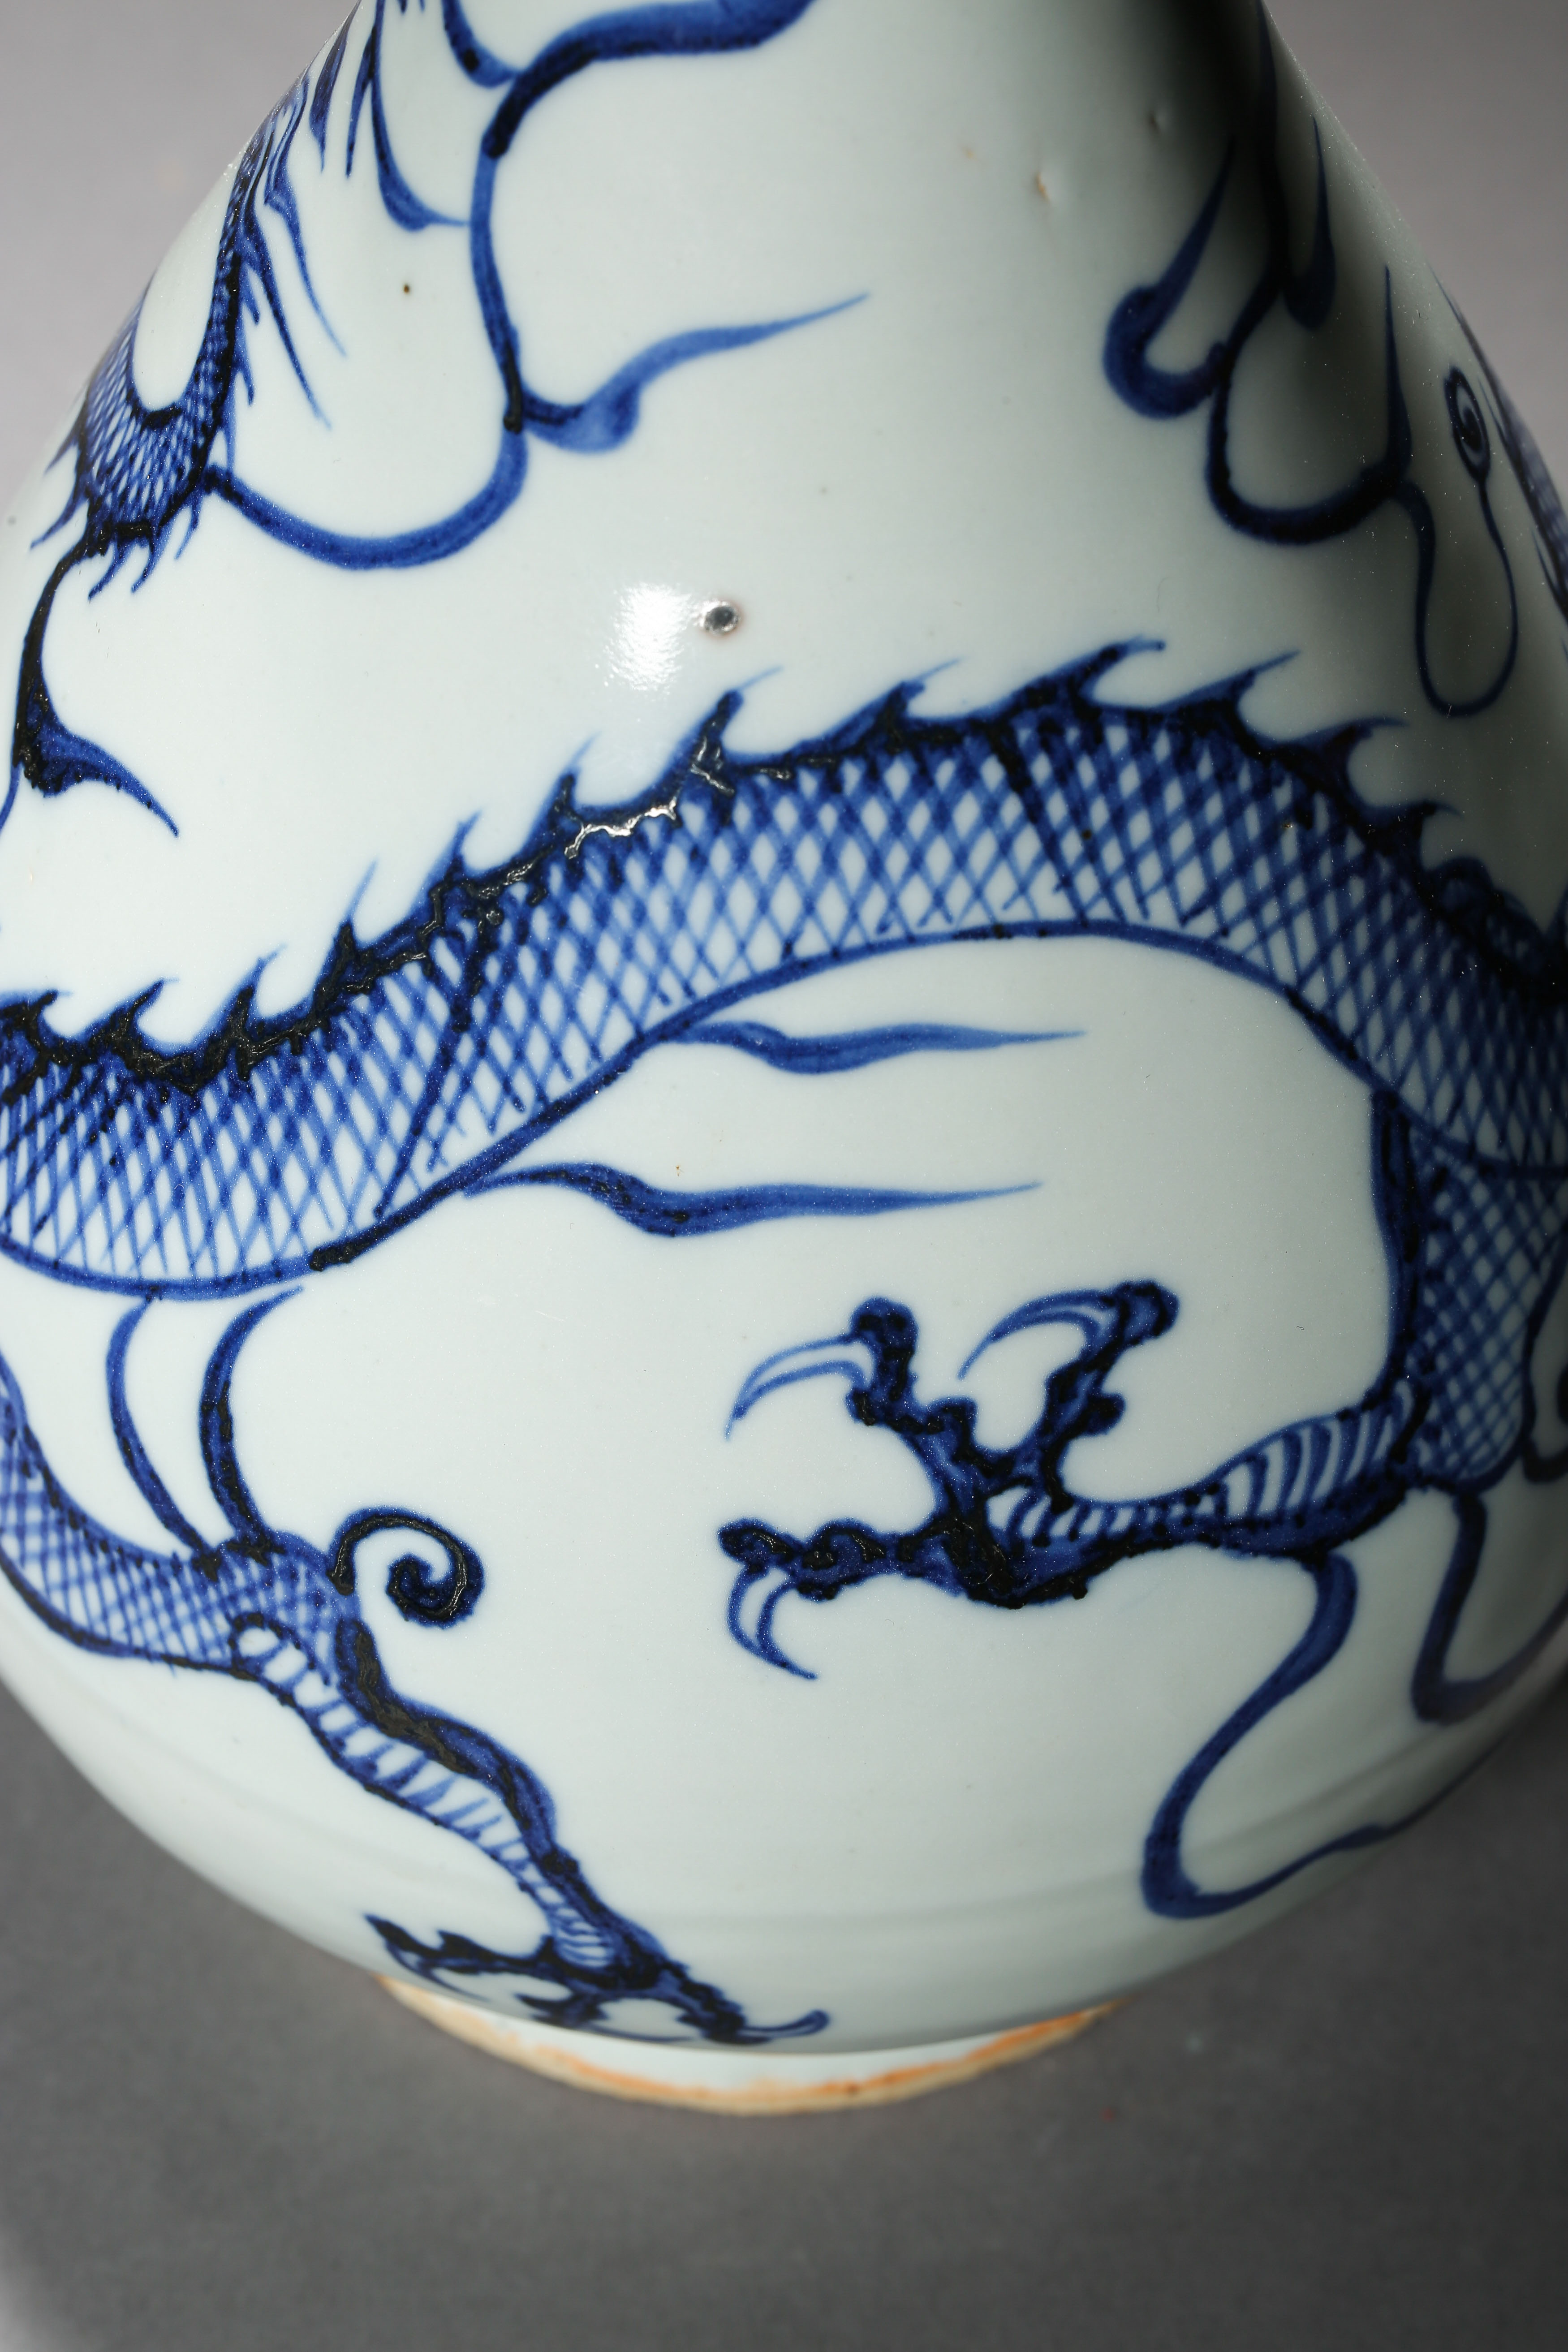 BLUE AND WHITE DRAGON PATTERN VASE, YUAN DYNASTY, CHINA - Image 4 of 8